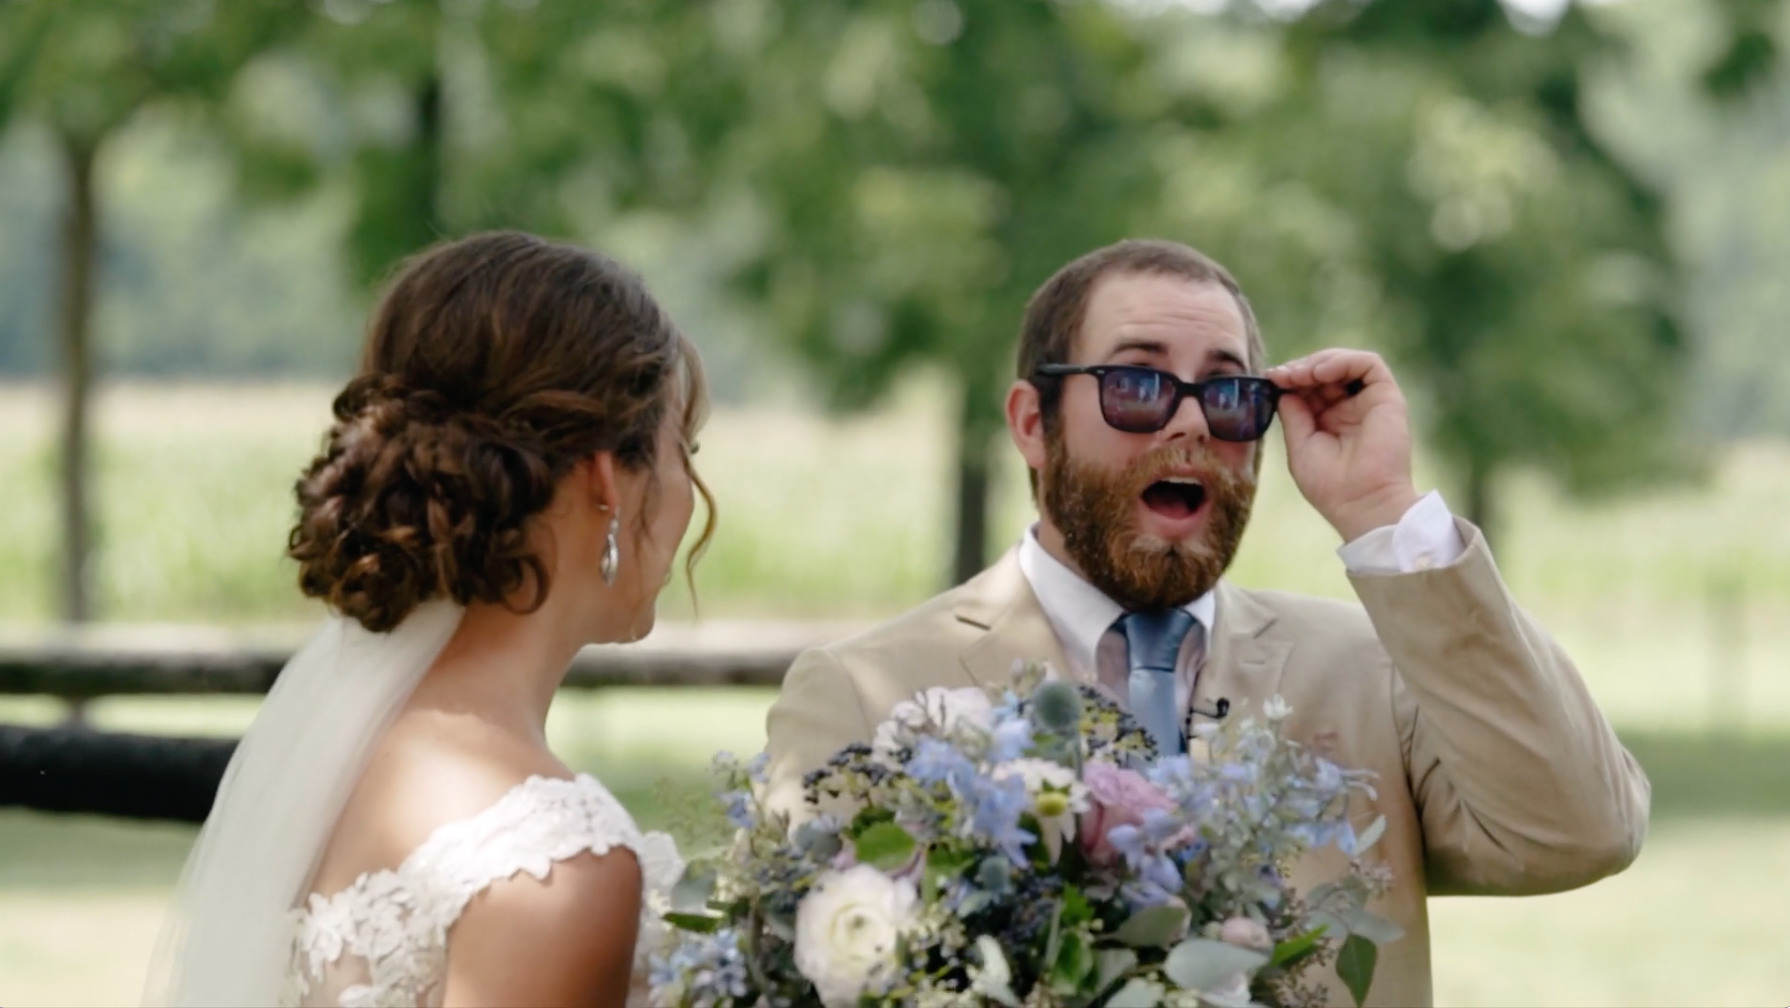 Colorblind groom receives colorblind glasses as wedding gift